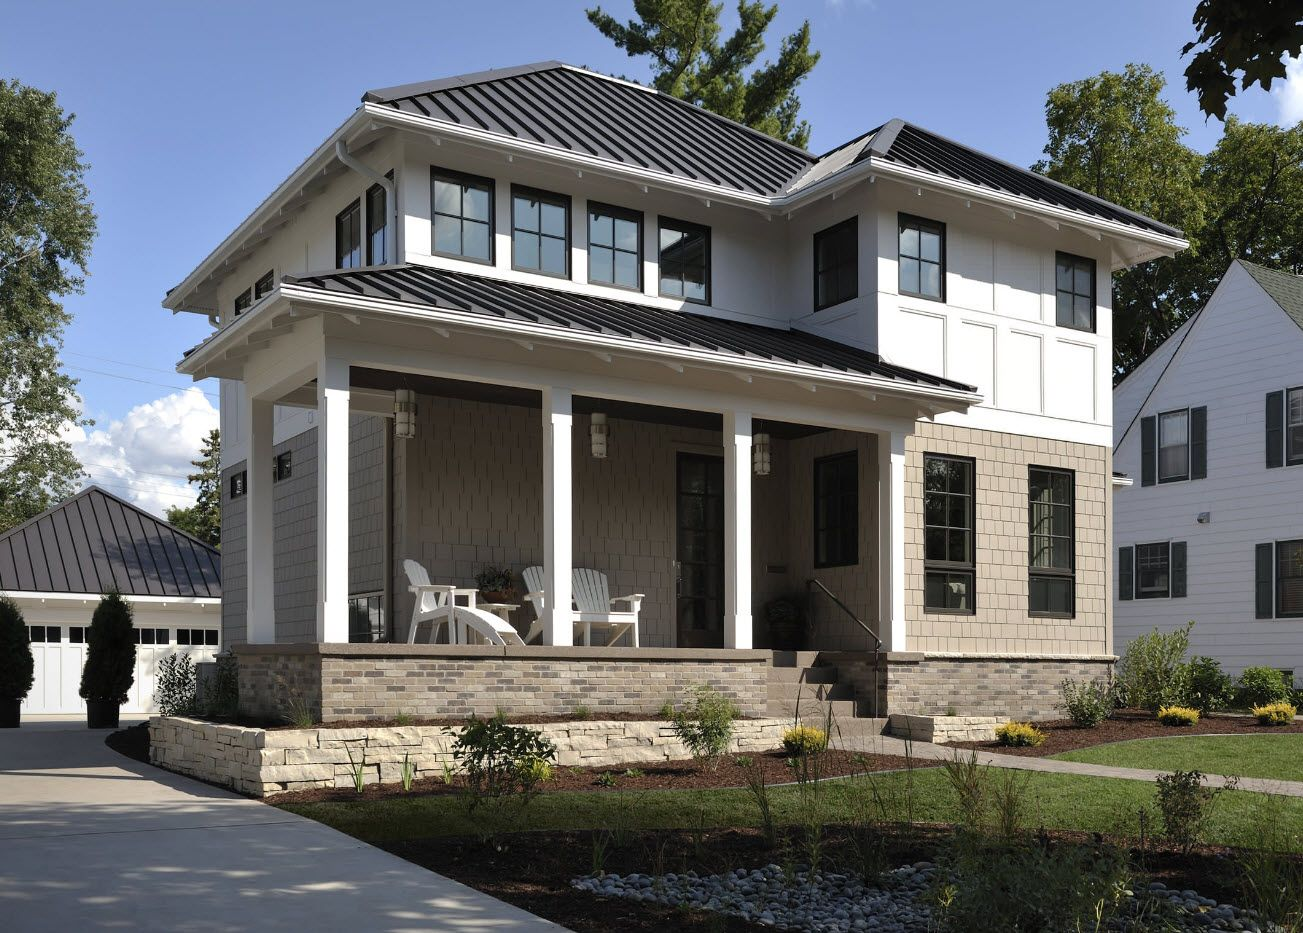 Nice two-storey house with pillars at the first level